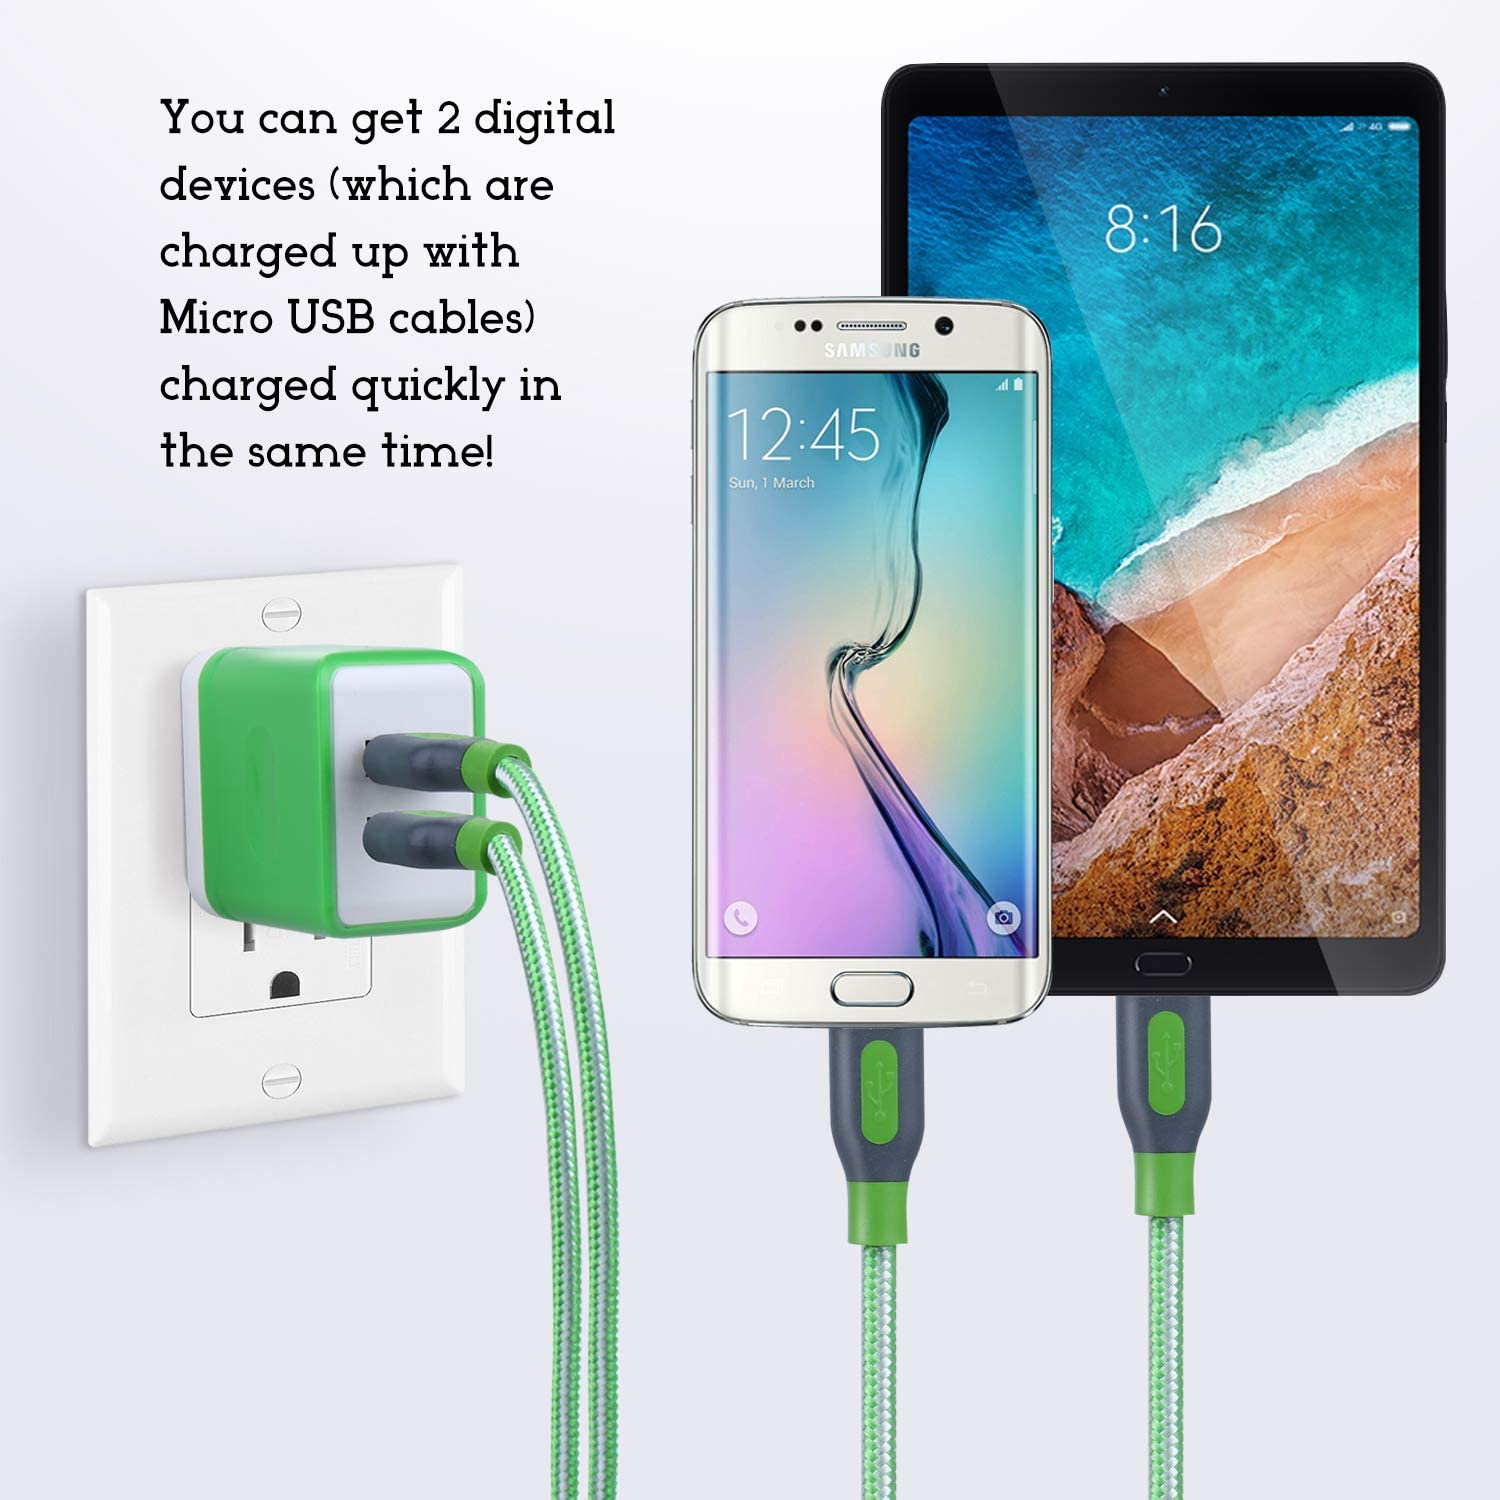 Table Costyle Wall Charger Micro USB Cable Kit 3.1 Amp Dual 2 Port Home Travel Charging Plug with 2 Pack 6ft Nylon Braided Sync Charge Cord Compatible for Samsung Galaxy S7 Android Devices Pink